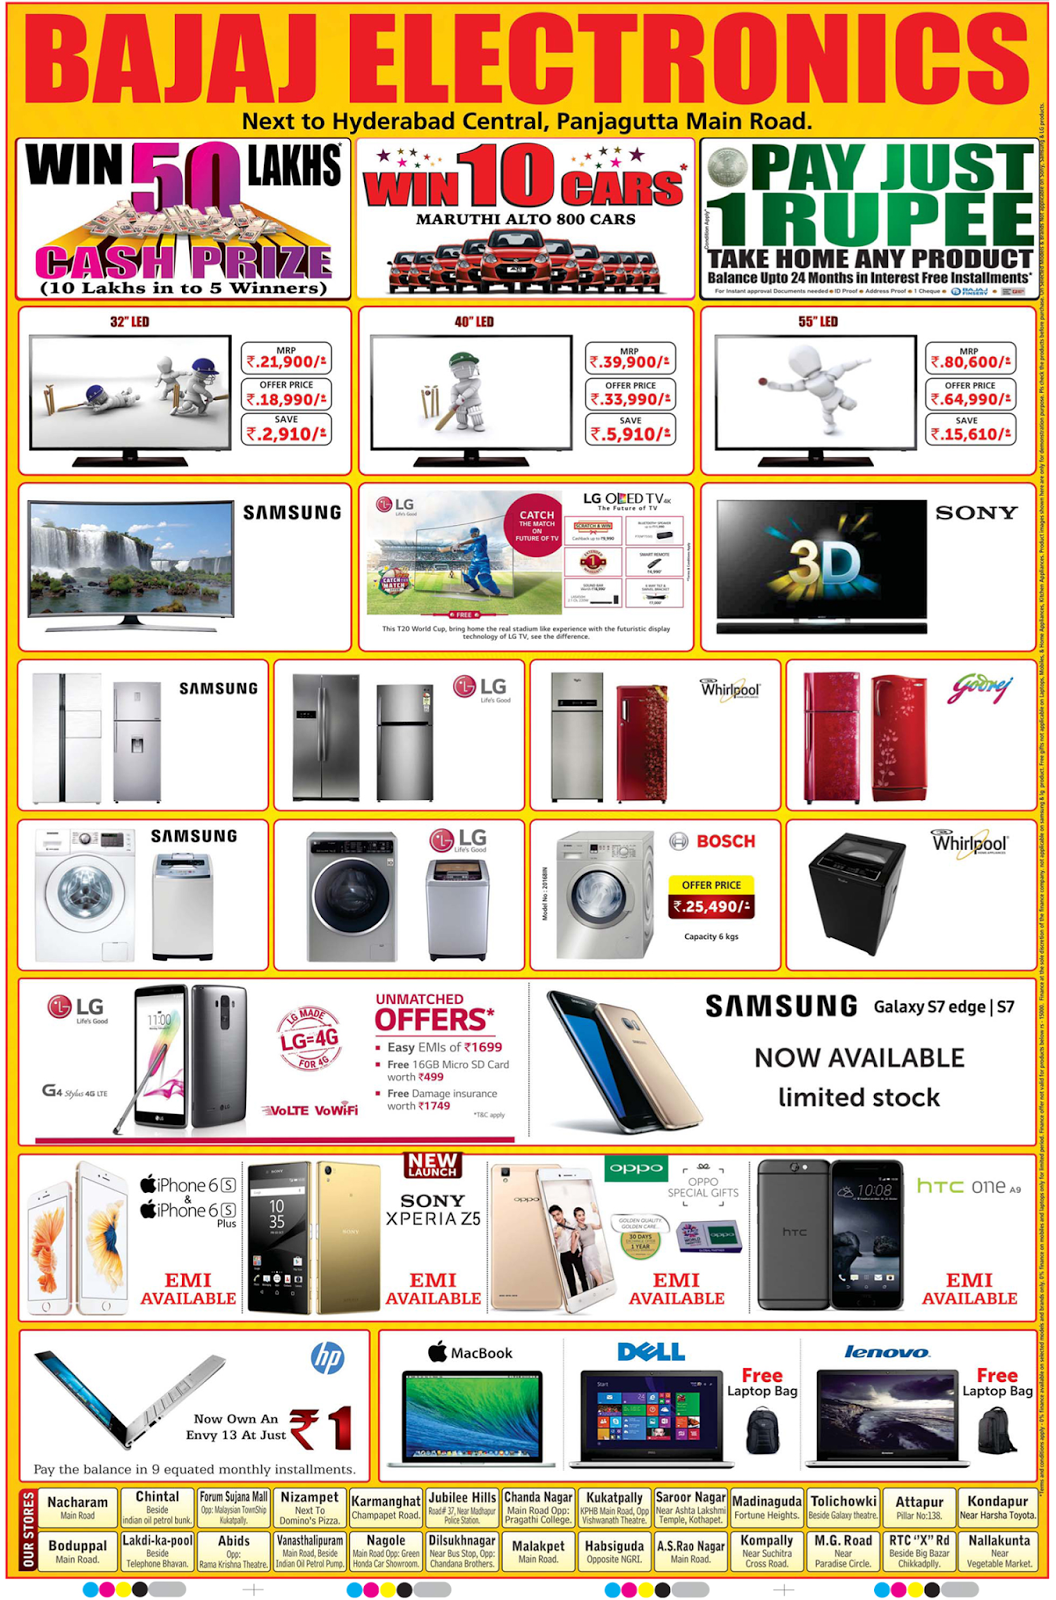 Bajaj electronics anniversary sale | March 2016 discount offer